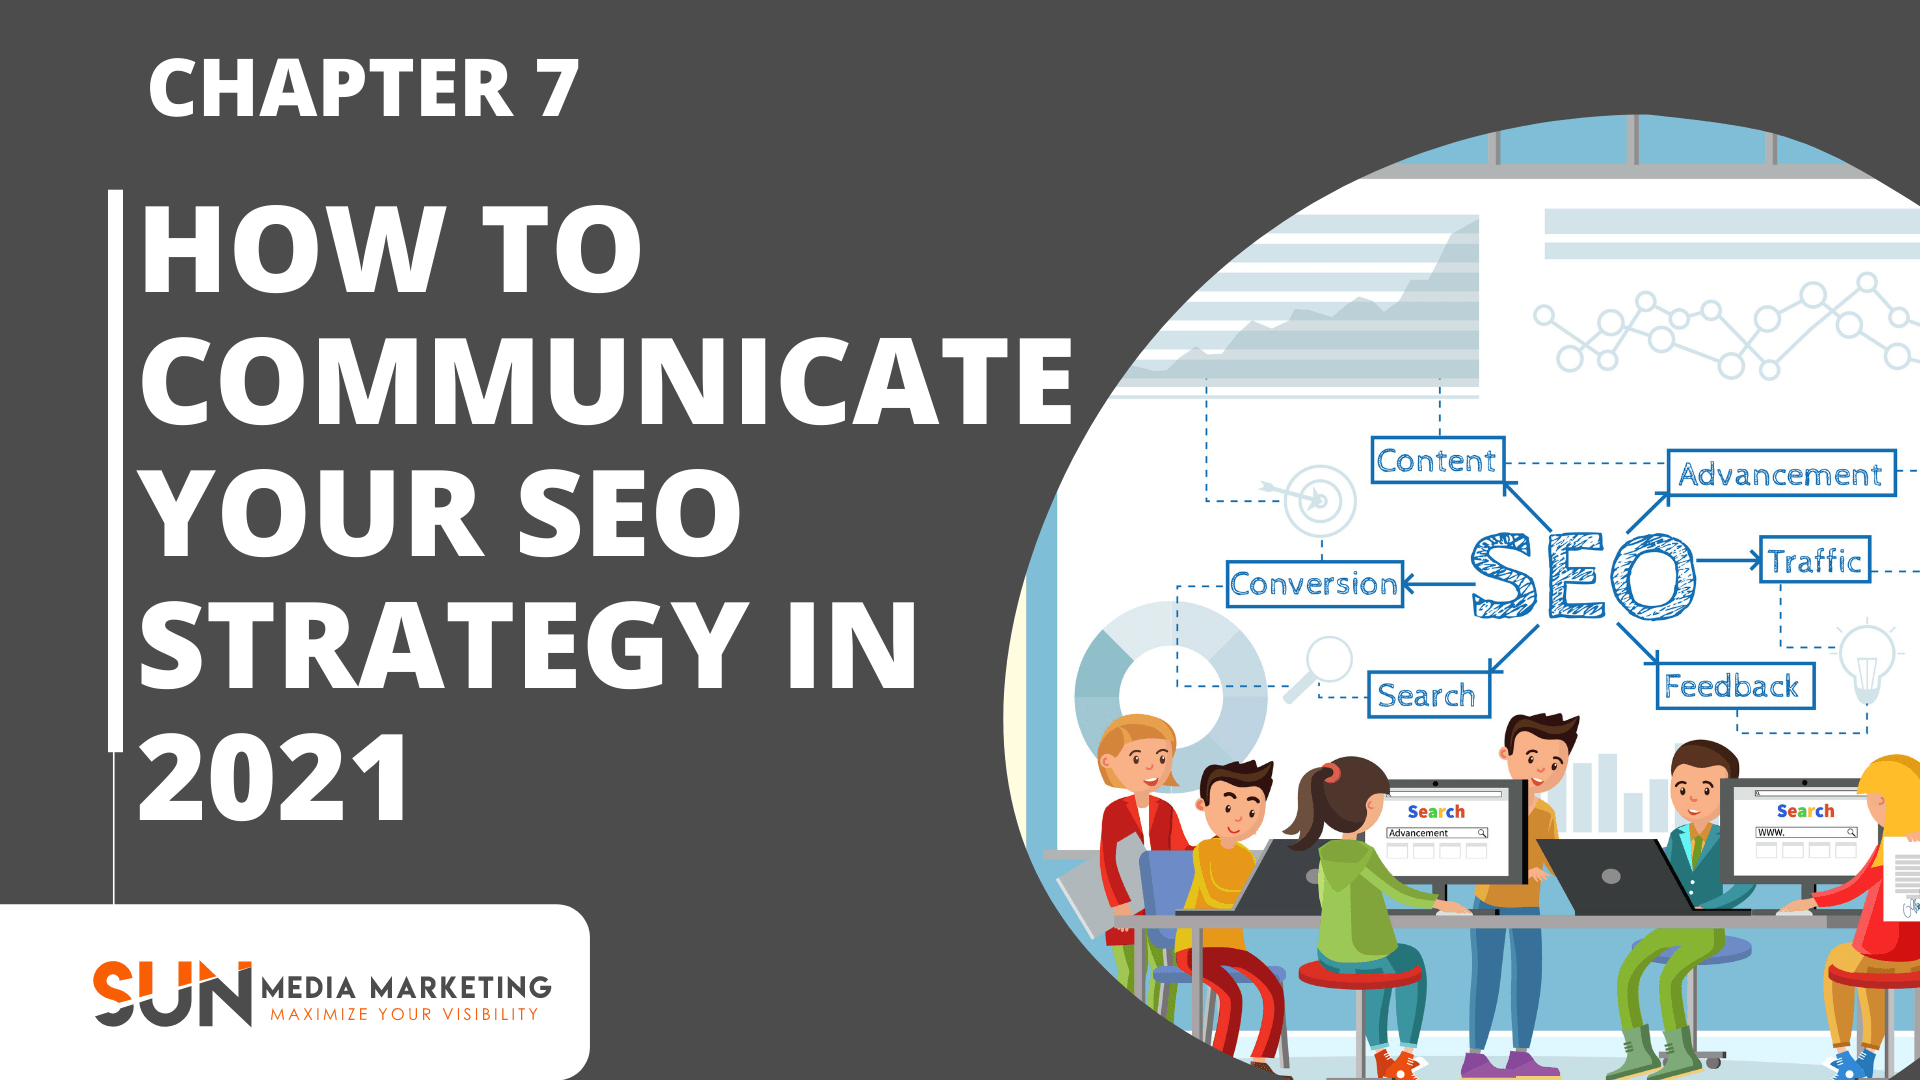 How To Communicate your SEO Strategy in 2021